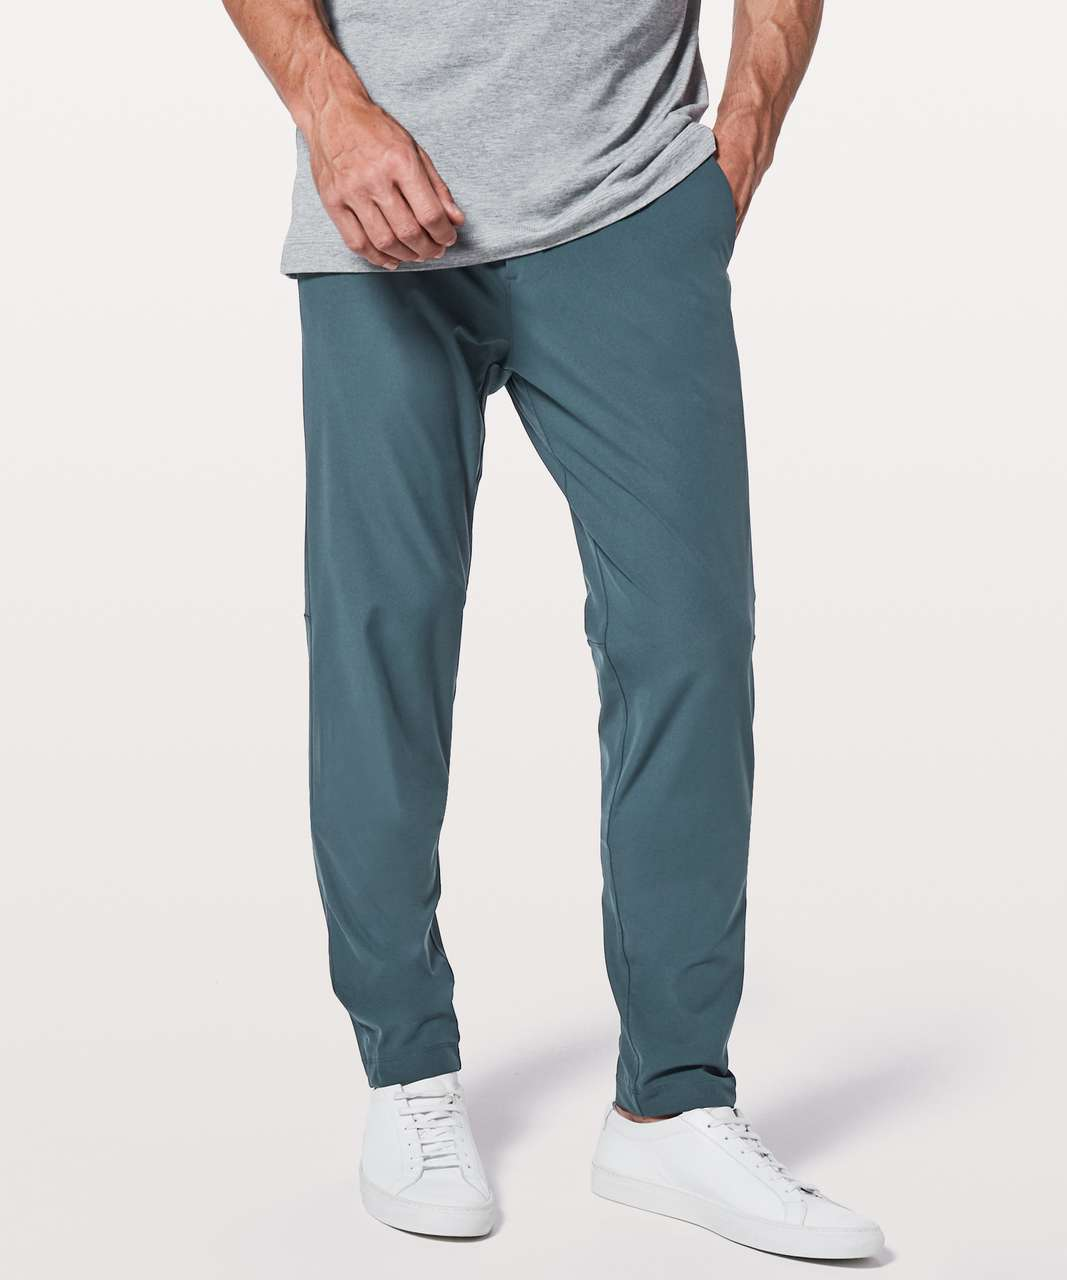 "Lululemon Commission Pant Slim *Warpstreme 34"" - Mach Blue"